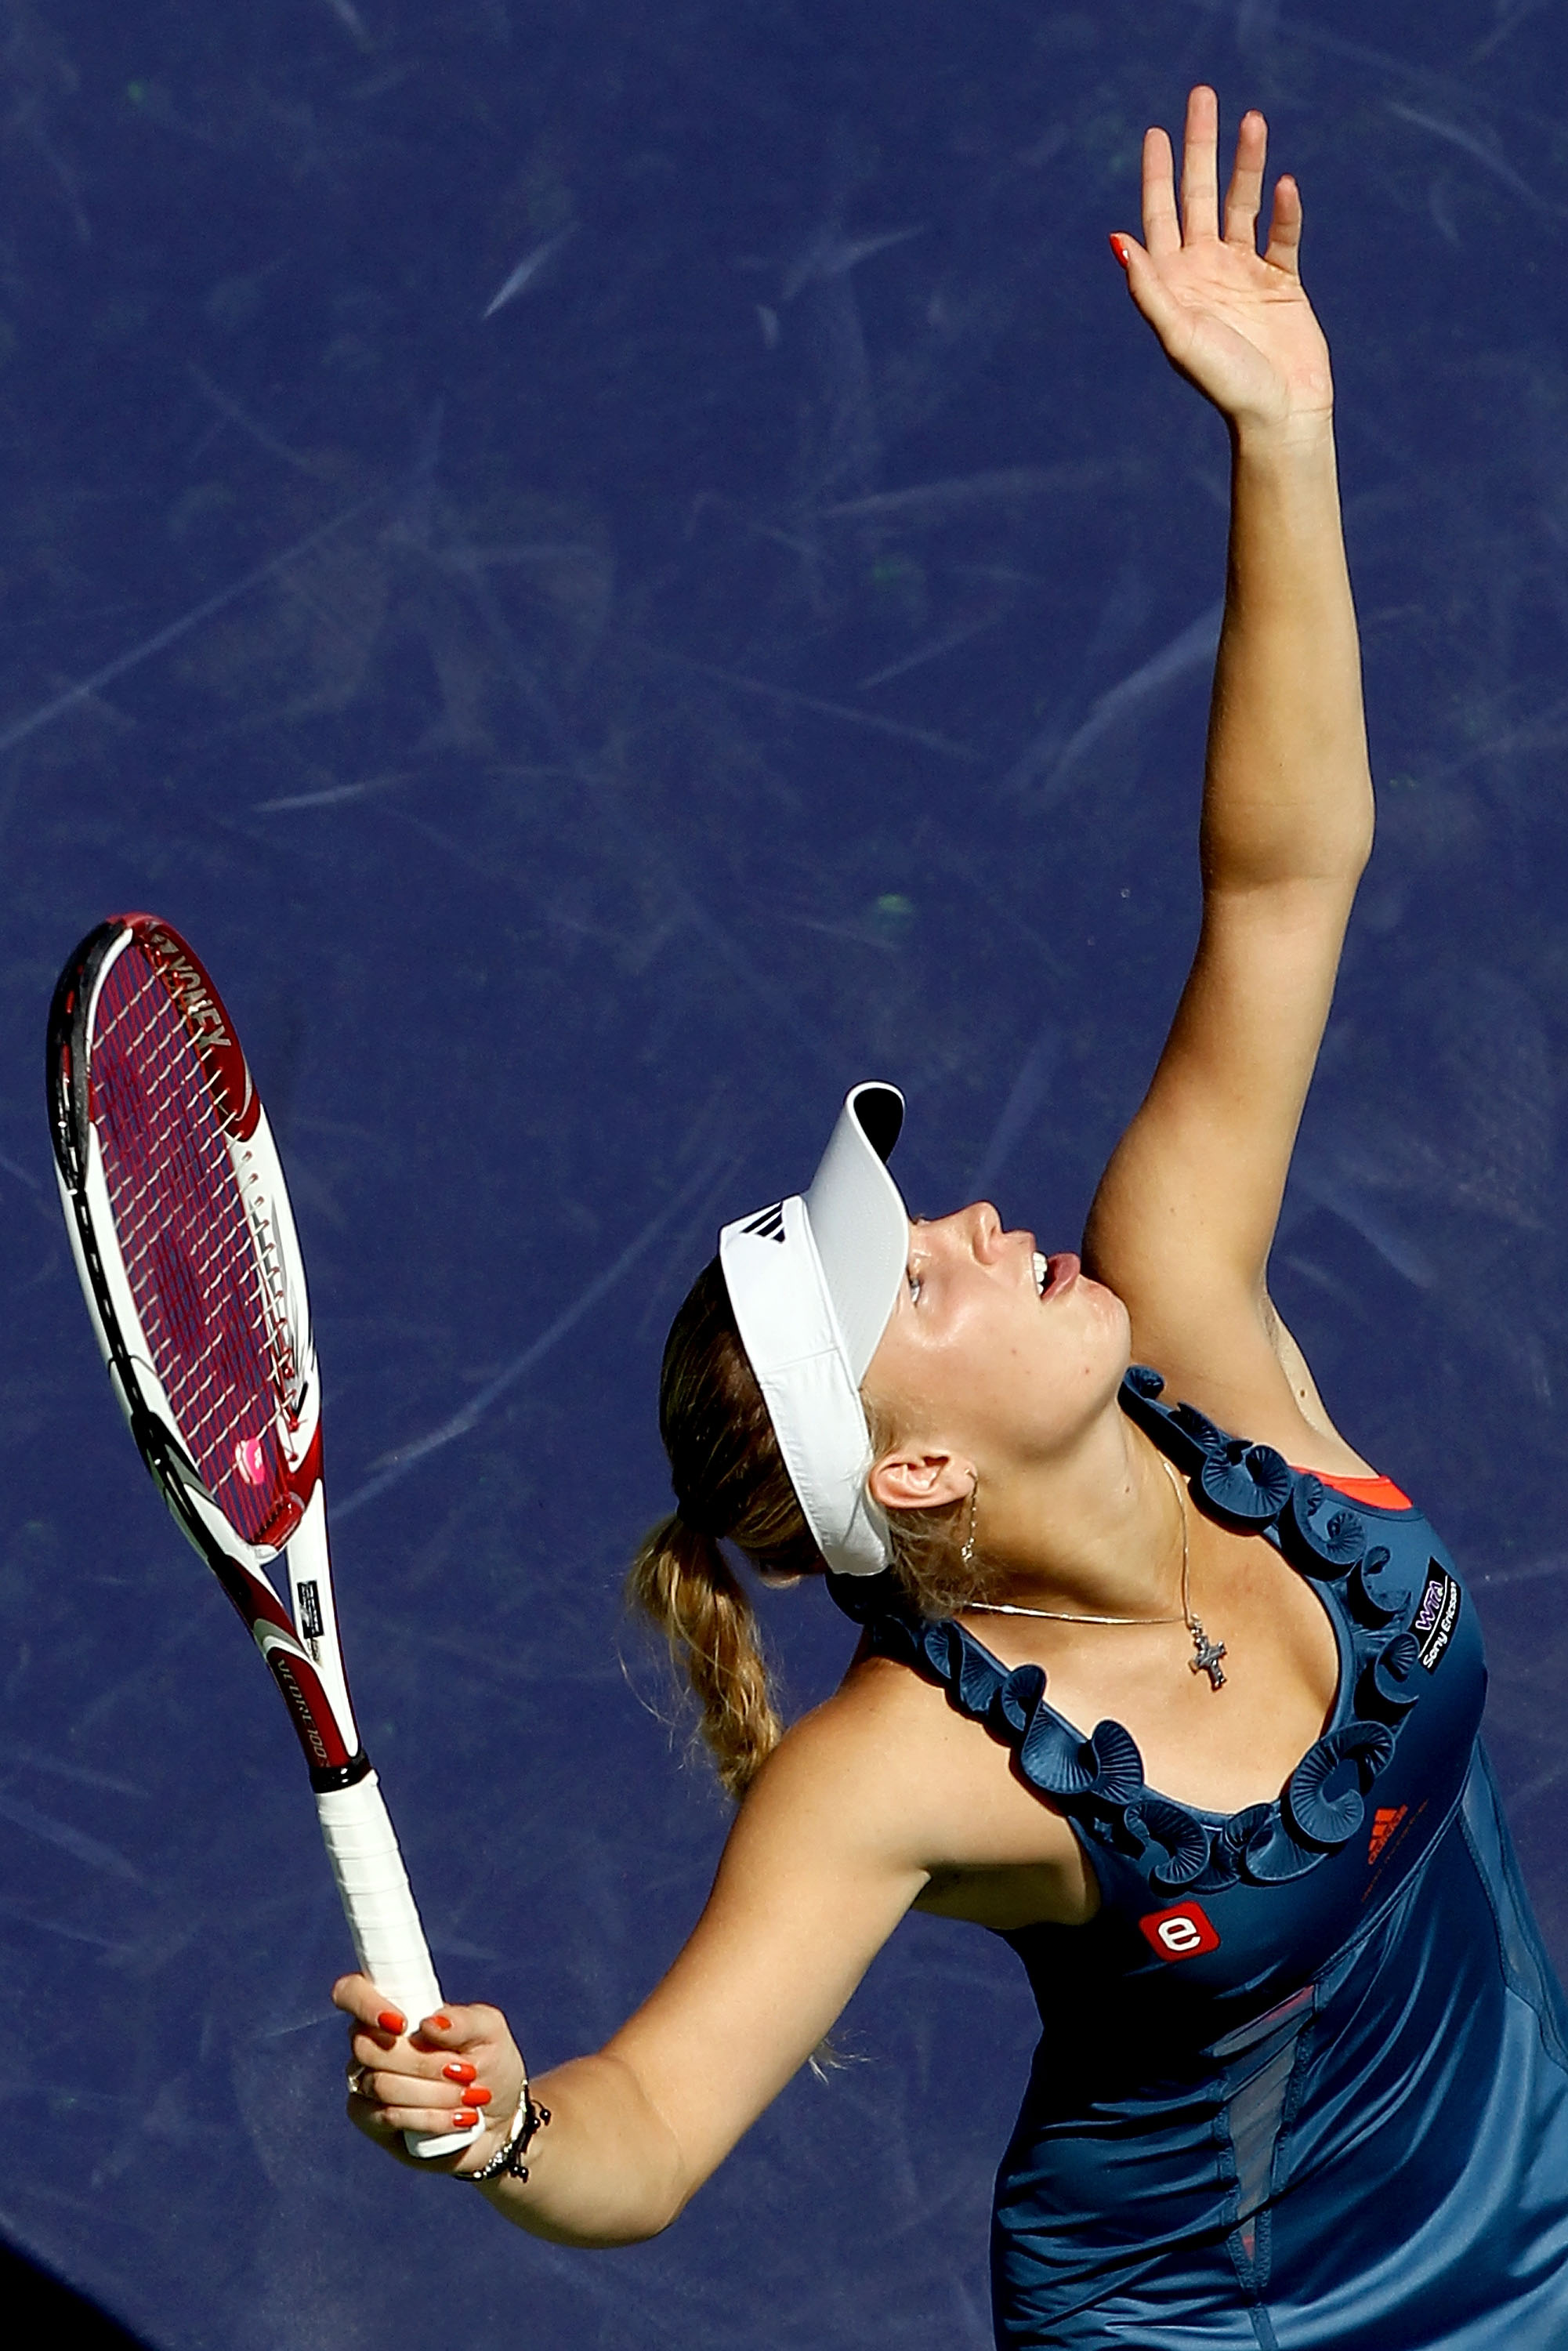 Quite possibly the worse neckline in the history of tennis fashion. Oy.